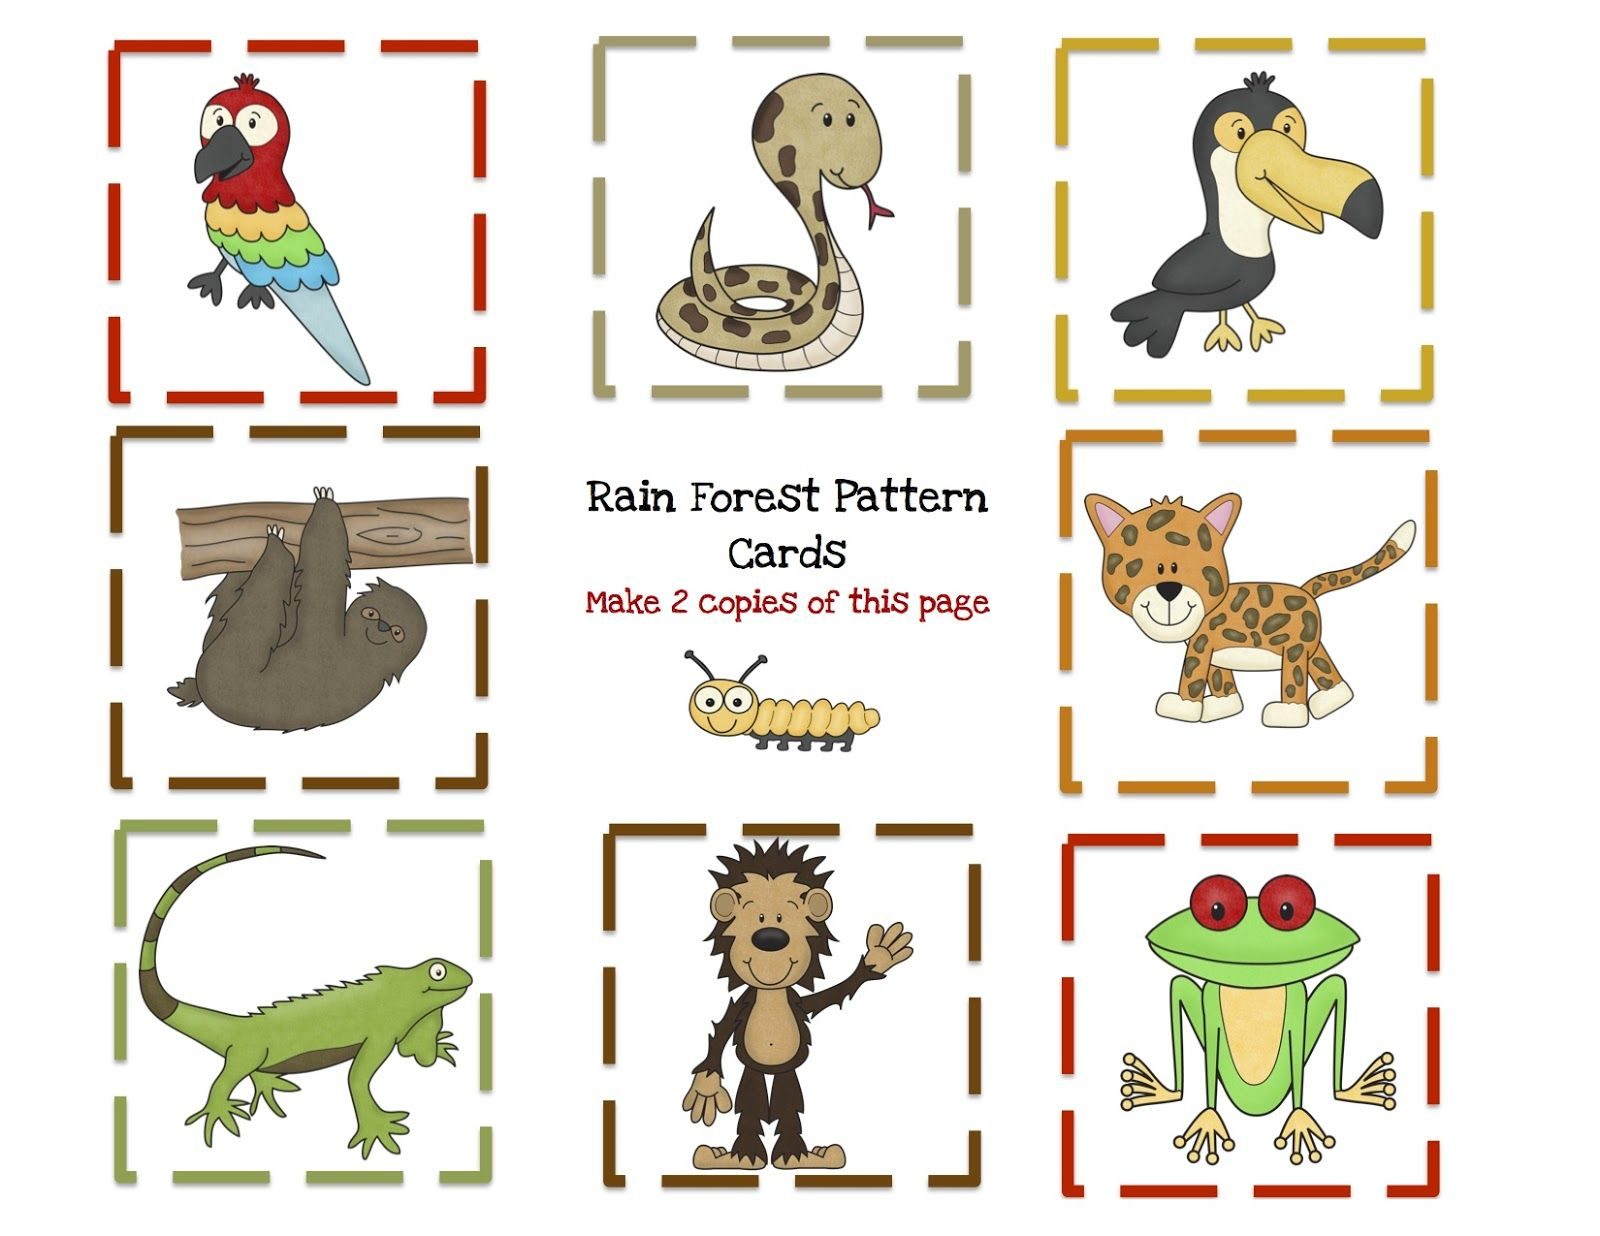 Free Printable Rainforest Pattern Cards With 8 Pattern